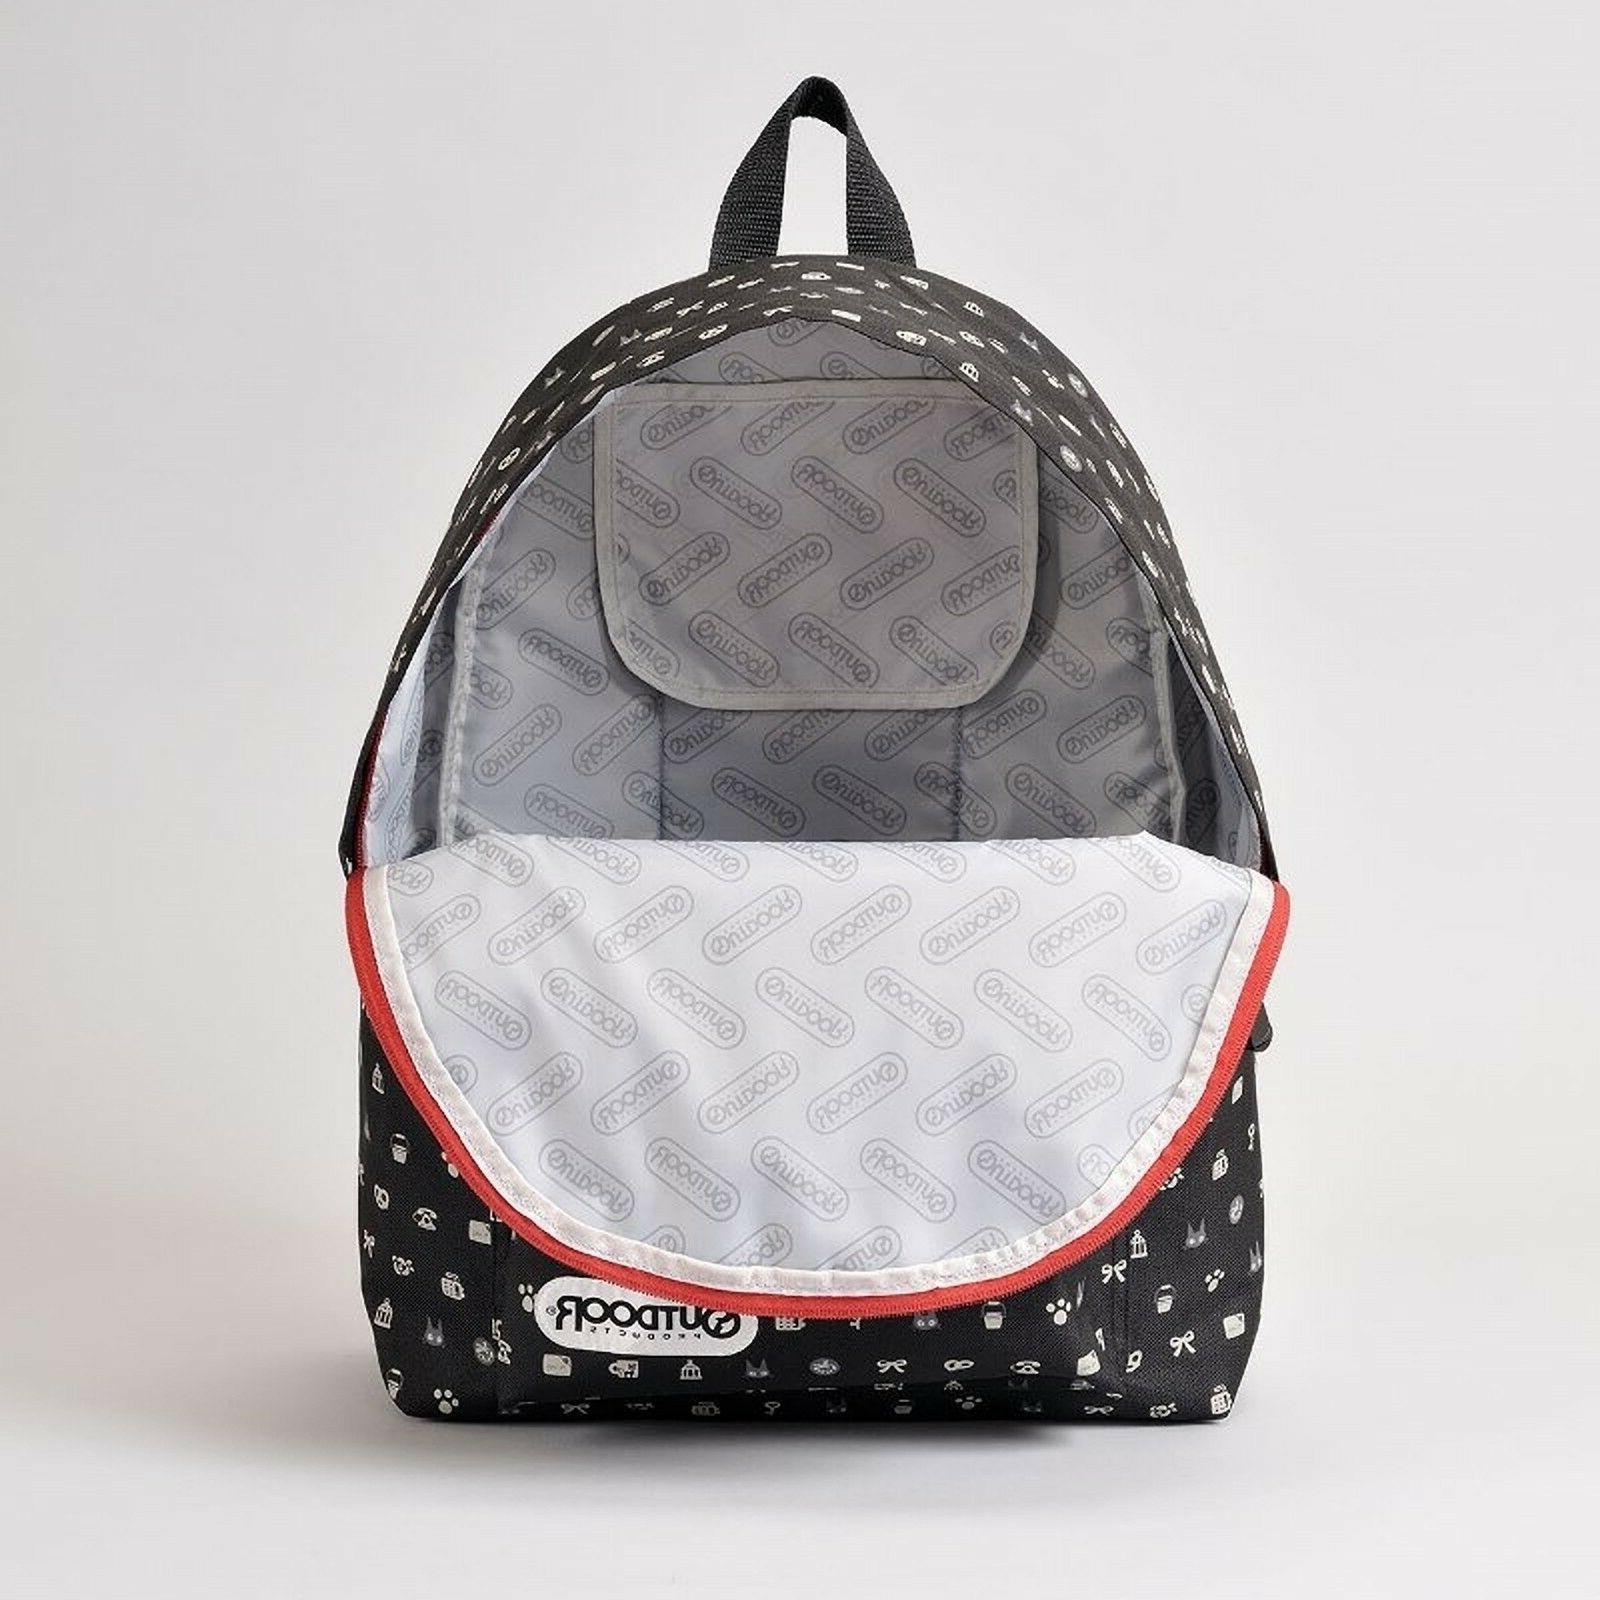 Kiki'S Delivery Backpack Day Bag Outdoor Collaboration Studio